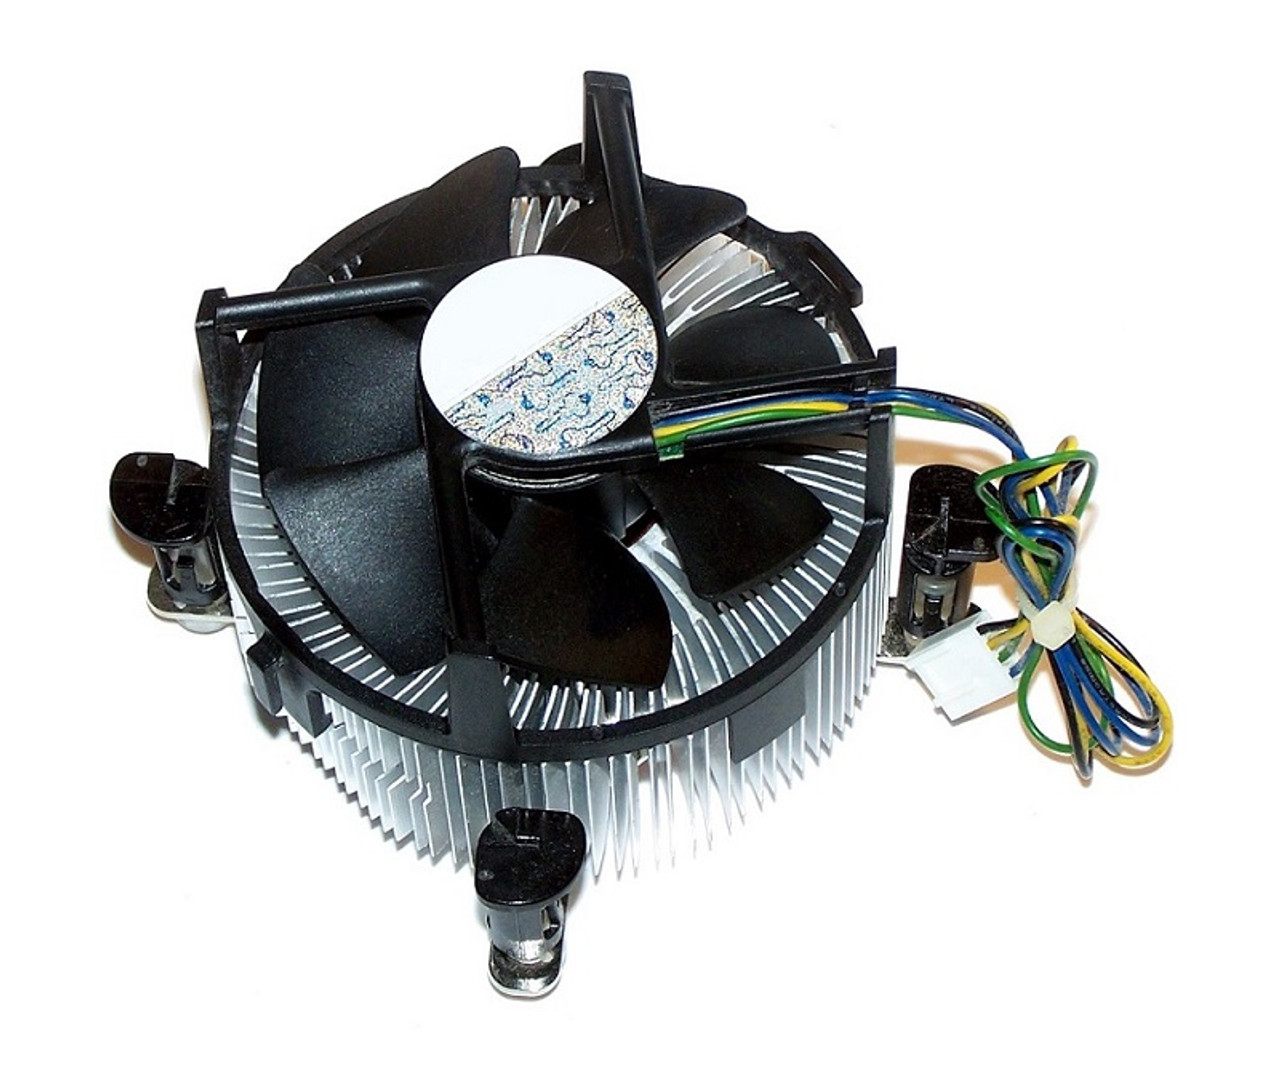 Ksb0705ha Dell Laptop Amd Heatsink And Fan 60 4if23 003 For Vostro 3550